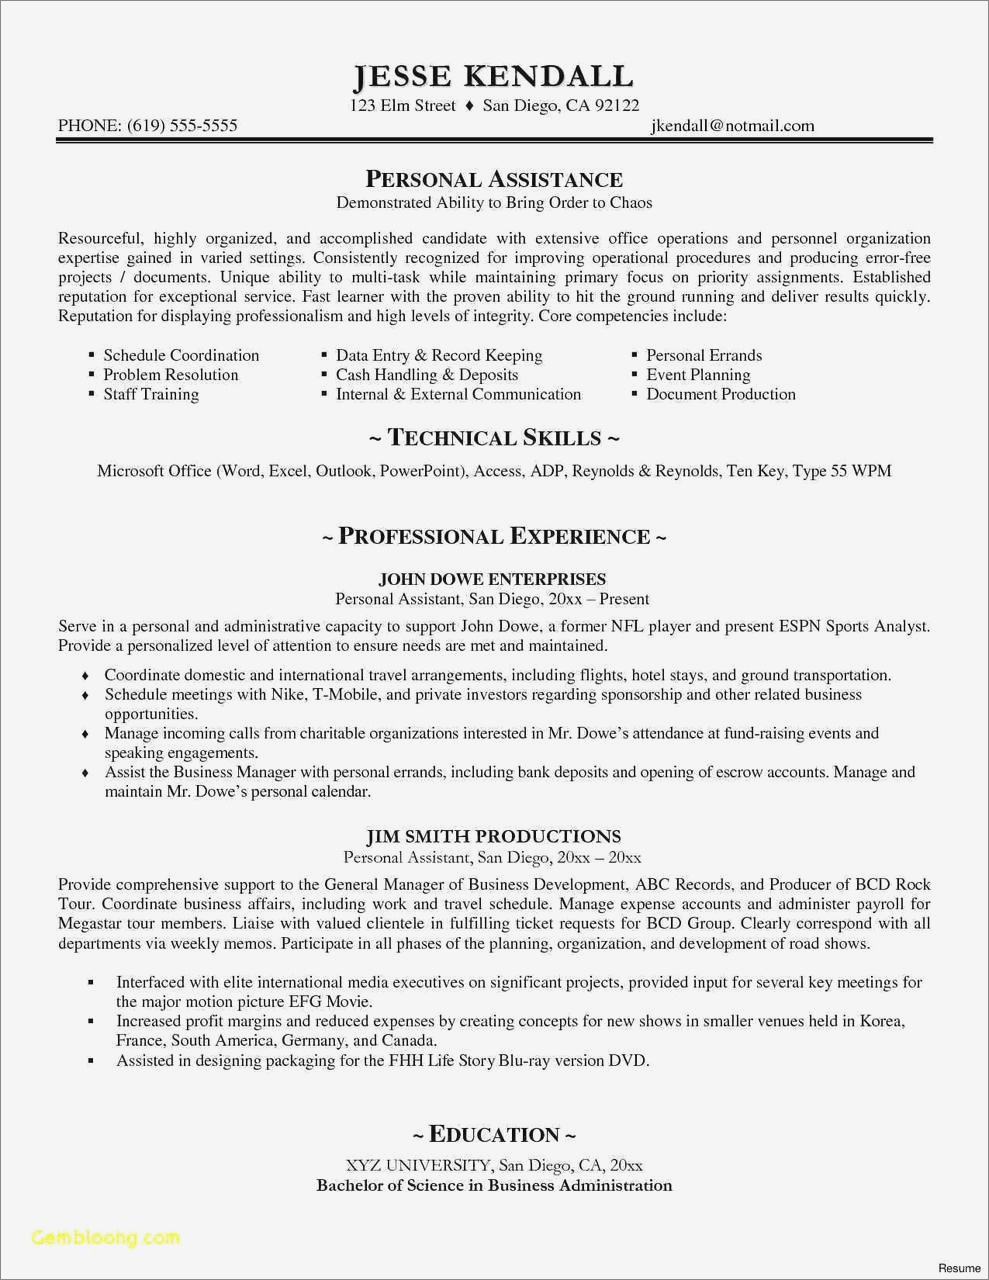 Attractive Resume Templates Free Download Pdf